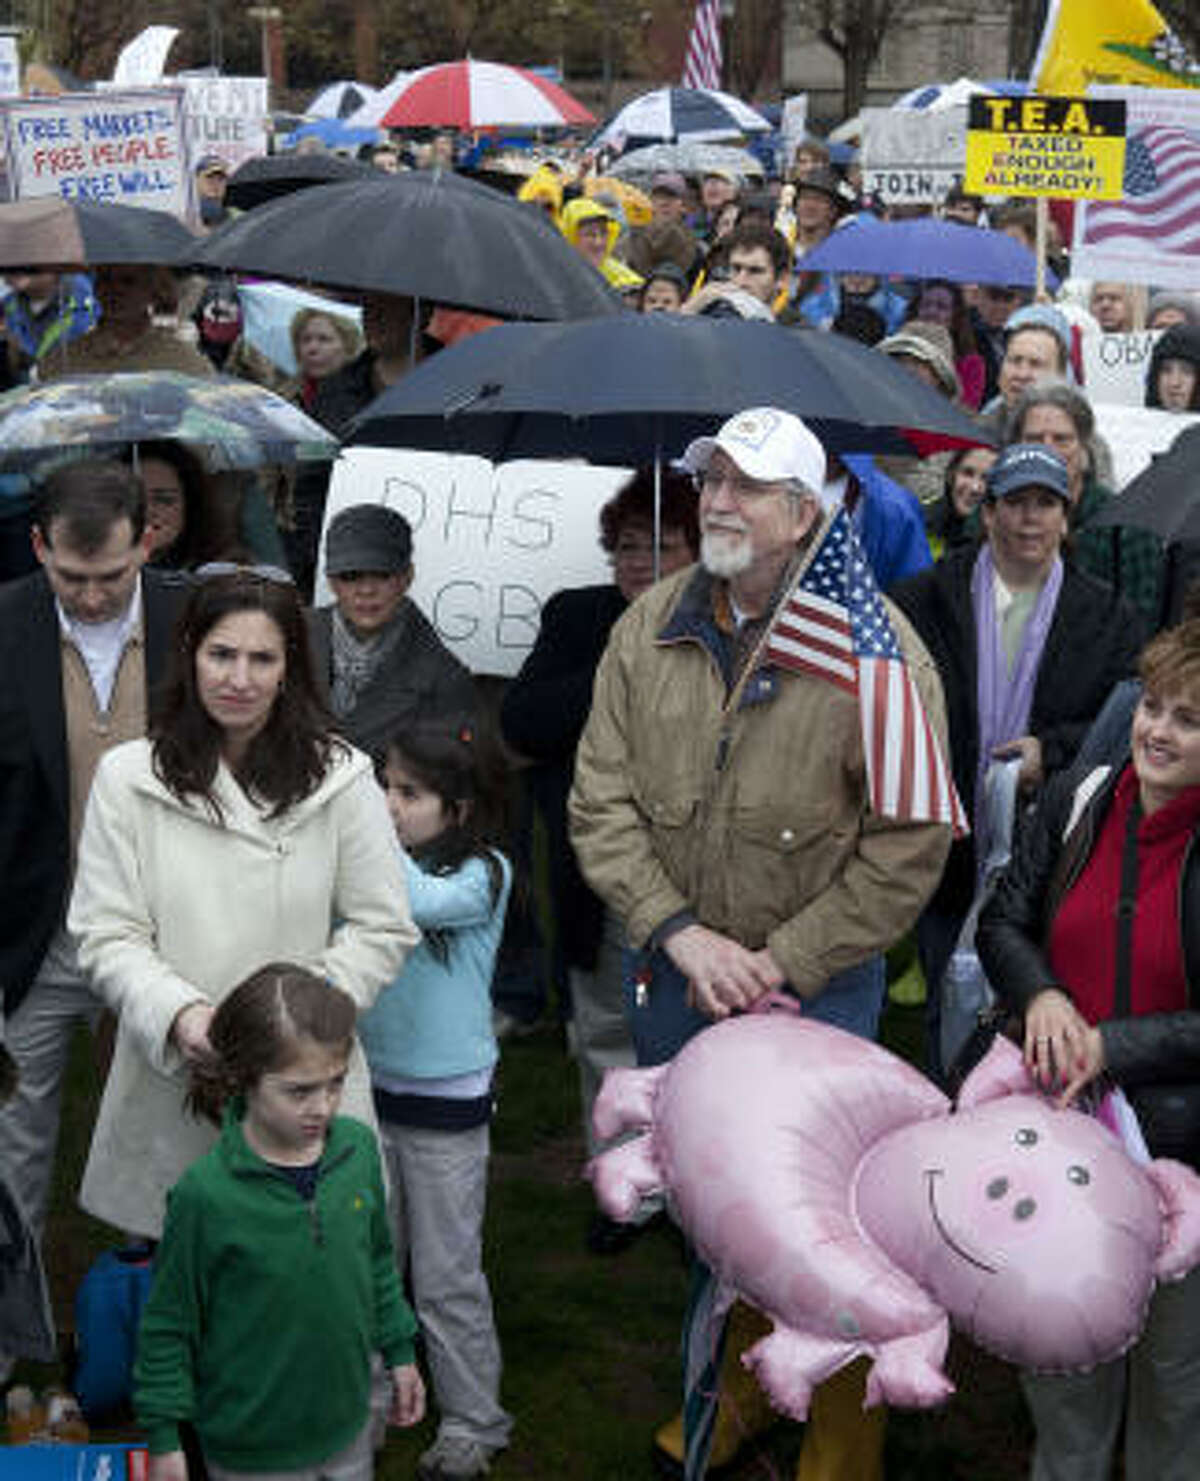 Protestors take part in a tea party demonstration today in Lafayette Park, across from the White House.